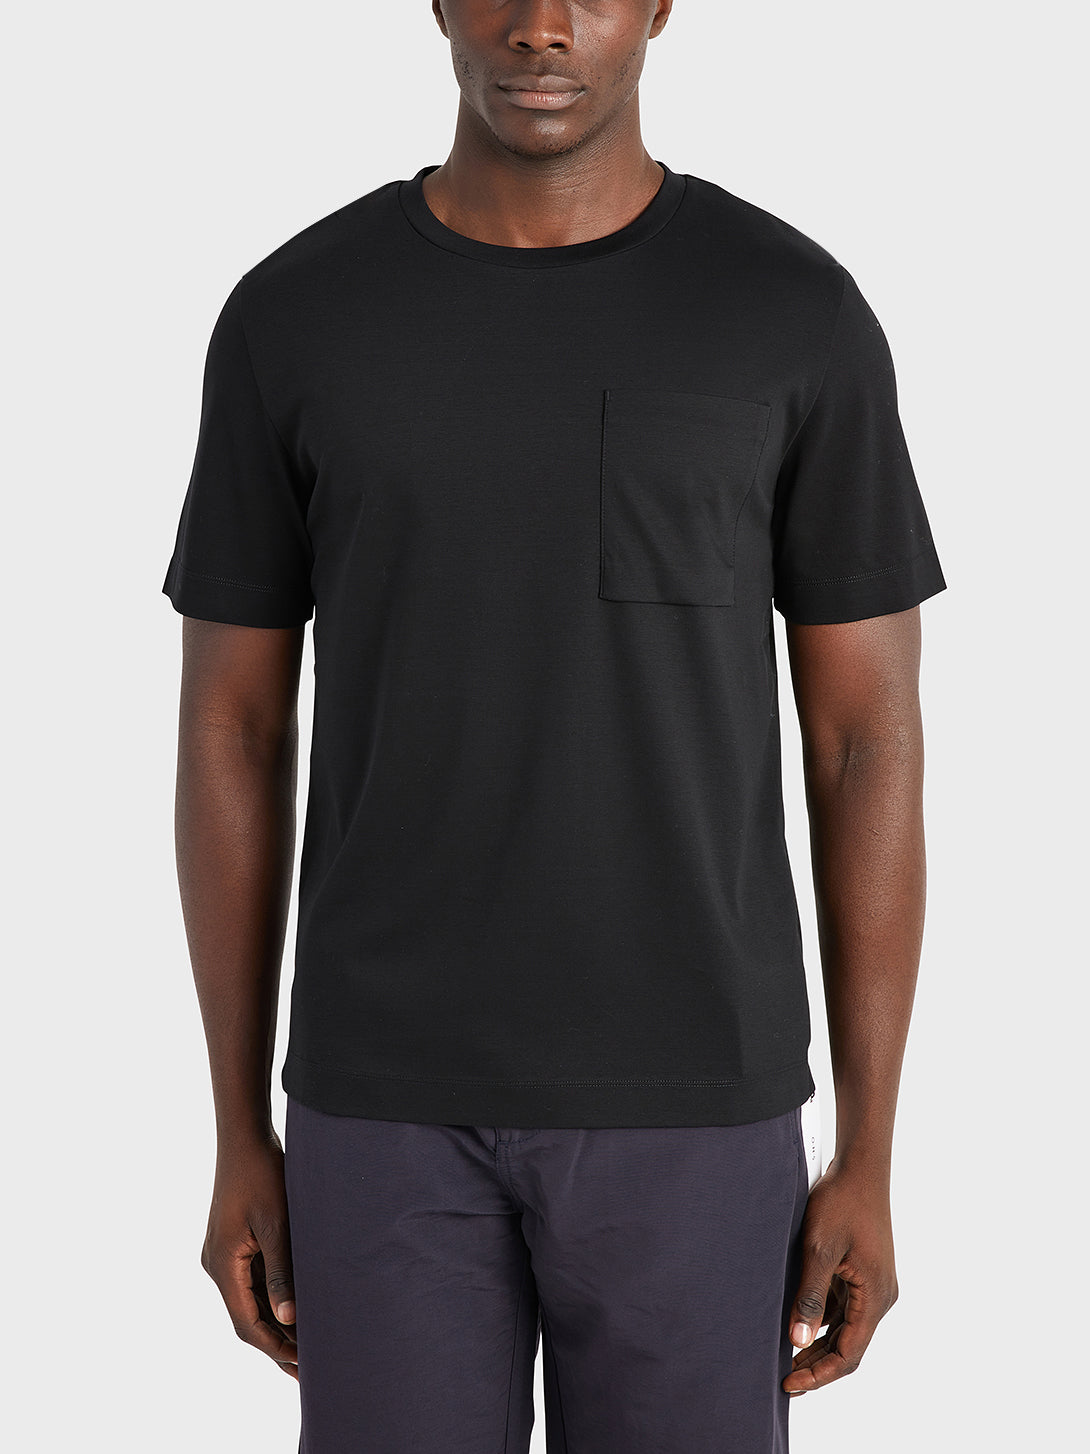 ONS Clothing Men's Baseile Pocket Tee in BLACK